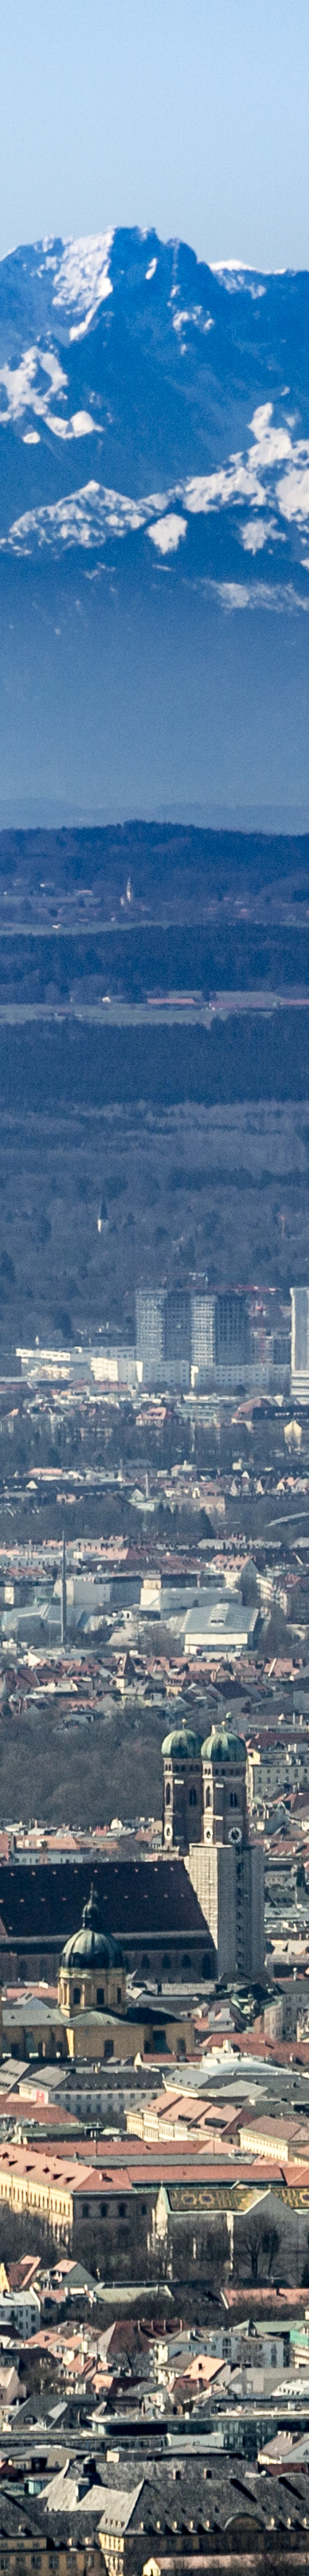 Aerial view of Munich with the Church of Our Lady in front of the Alps - Klaus Leidorf Aerial Photography